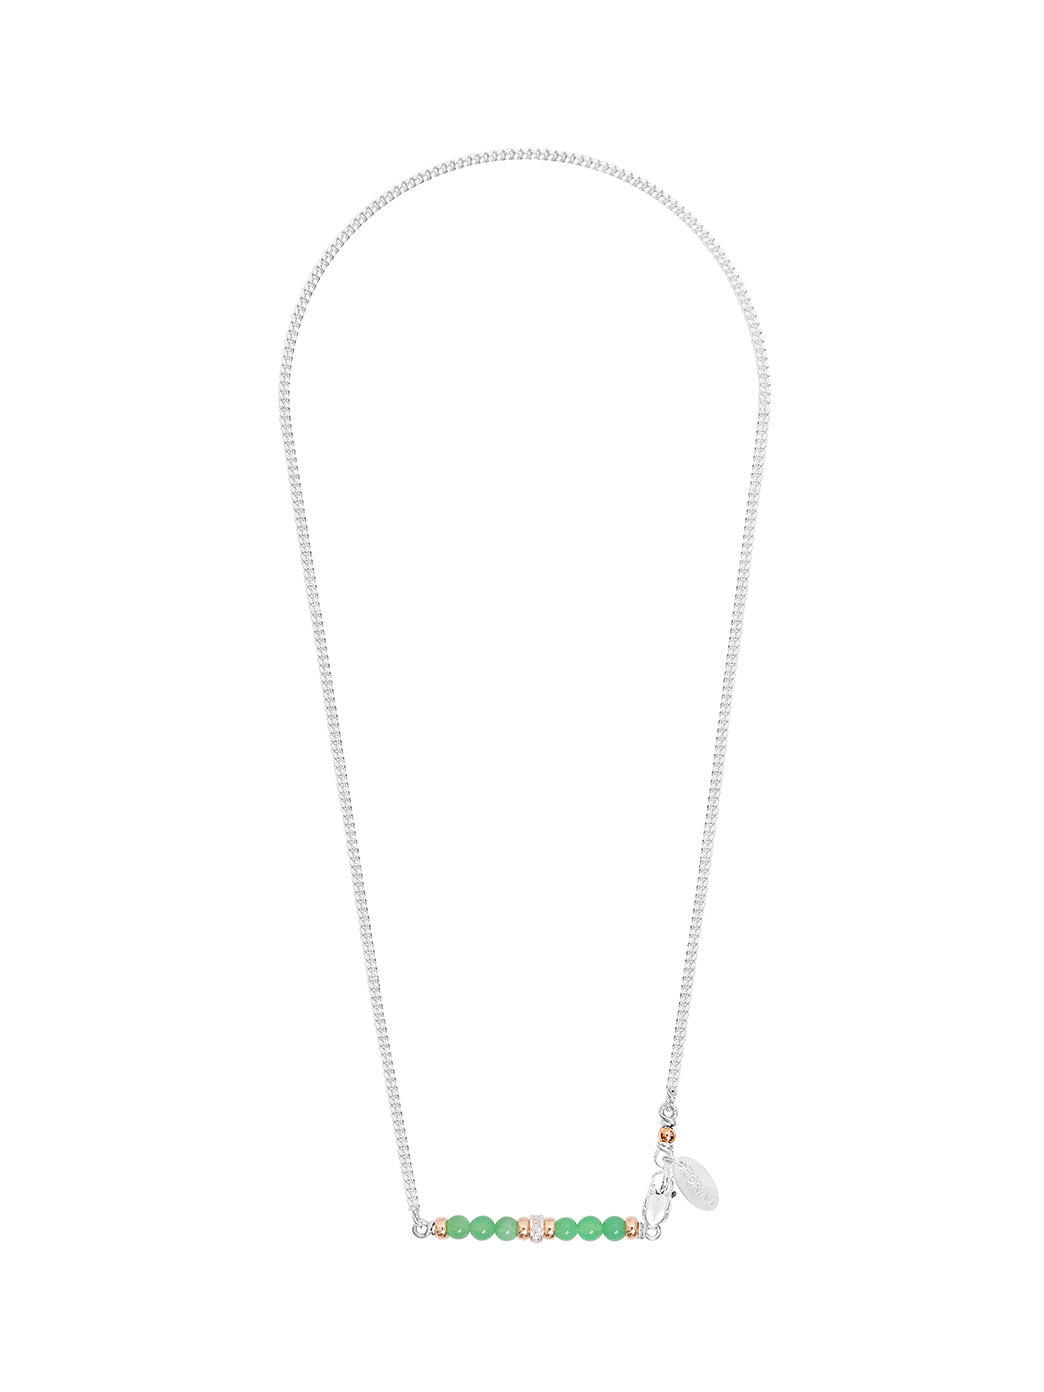 Fiorina Jewellery Silver Romance Necklace Chrysoprase